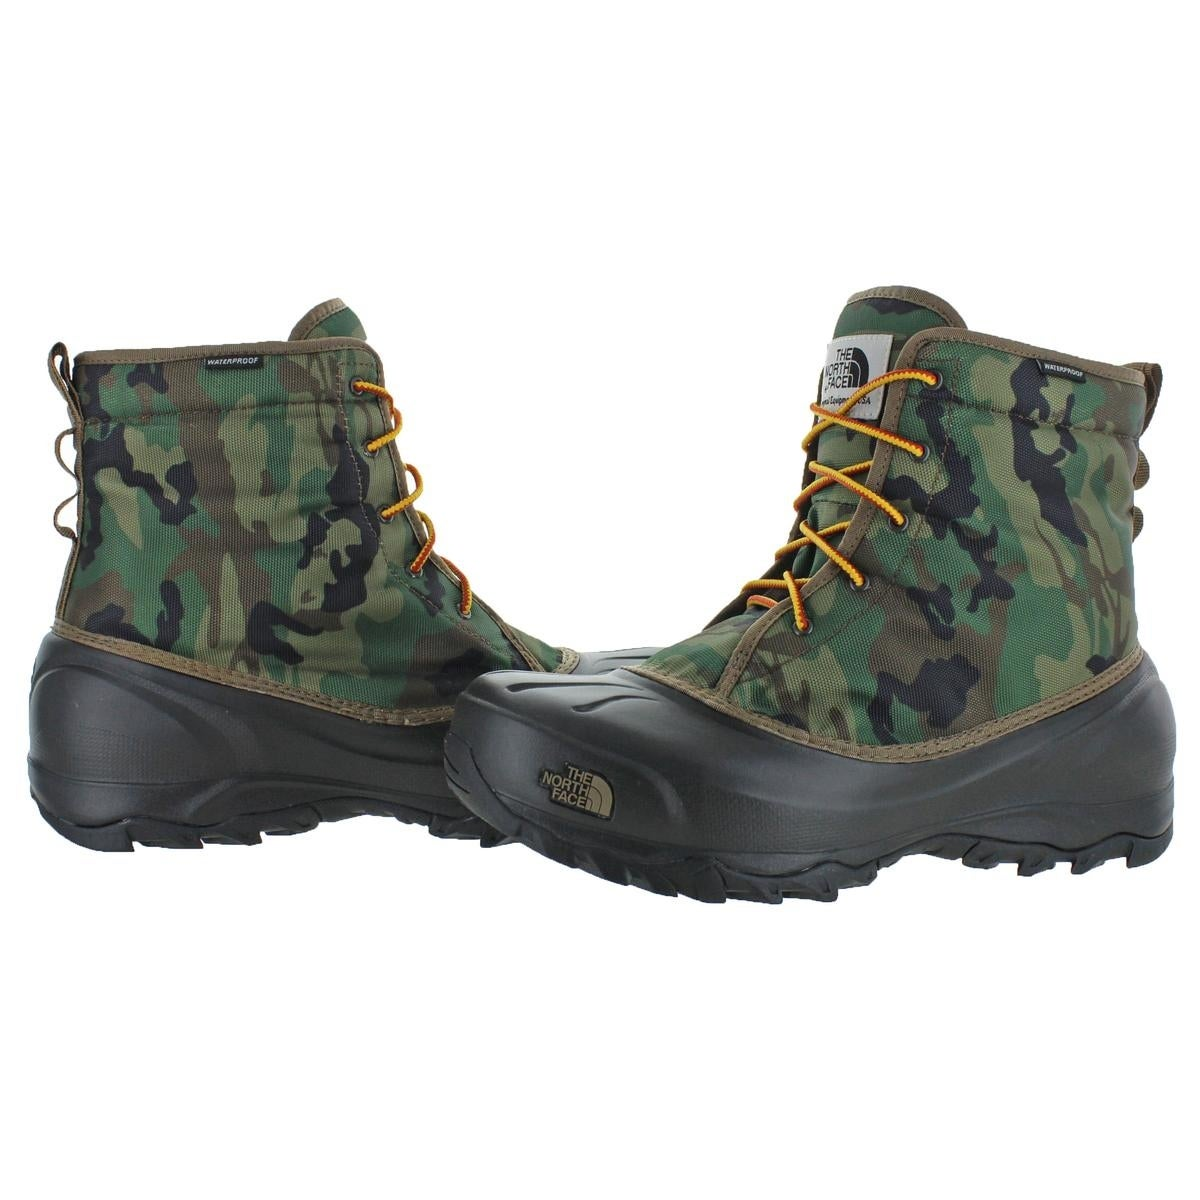 c45be83068c The North Face Mens Tsumoru Winter Boots Snow Insulated